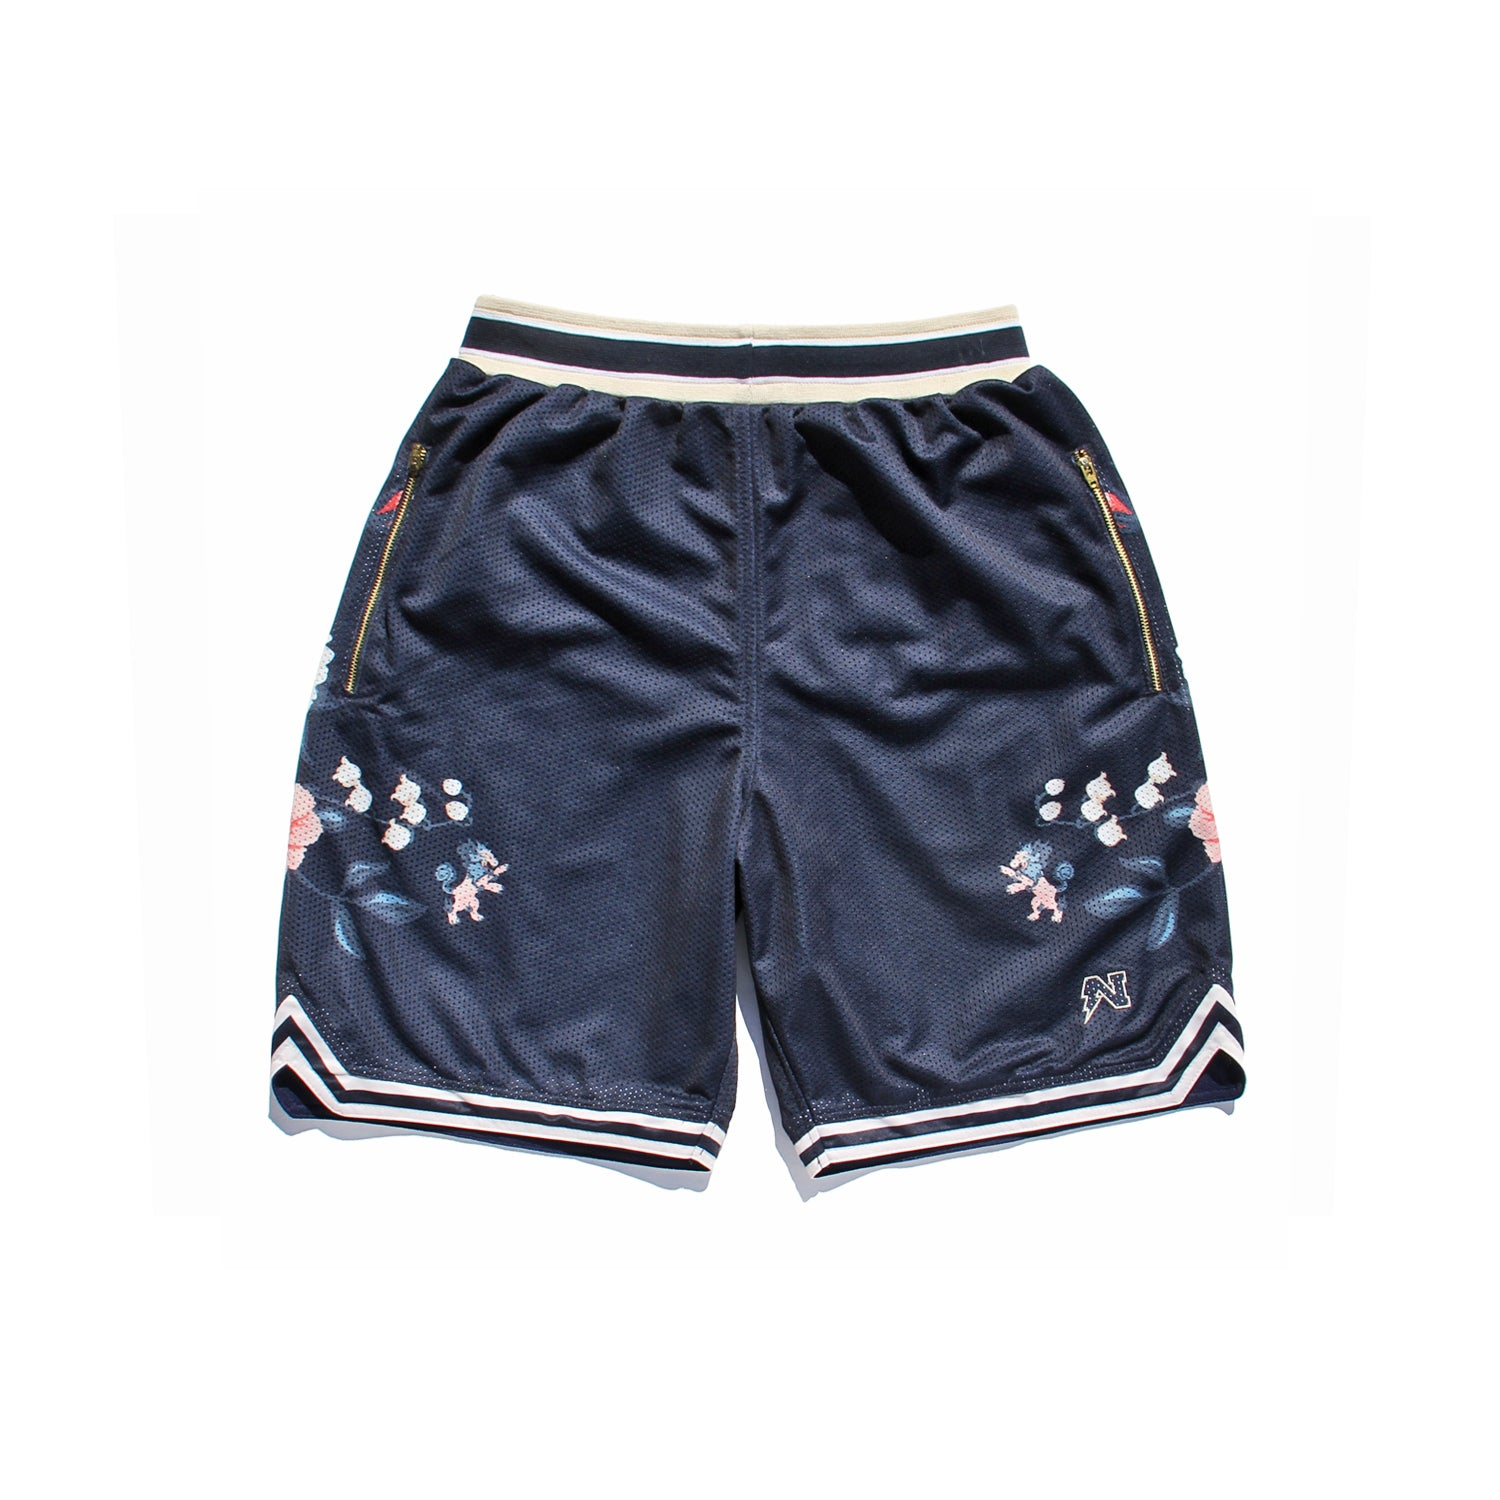 Floral Basketball Shorts - Navy